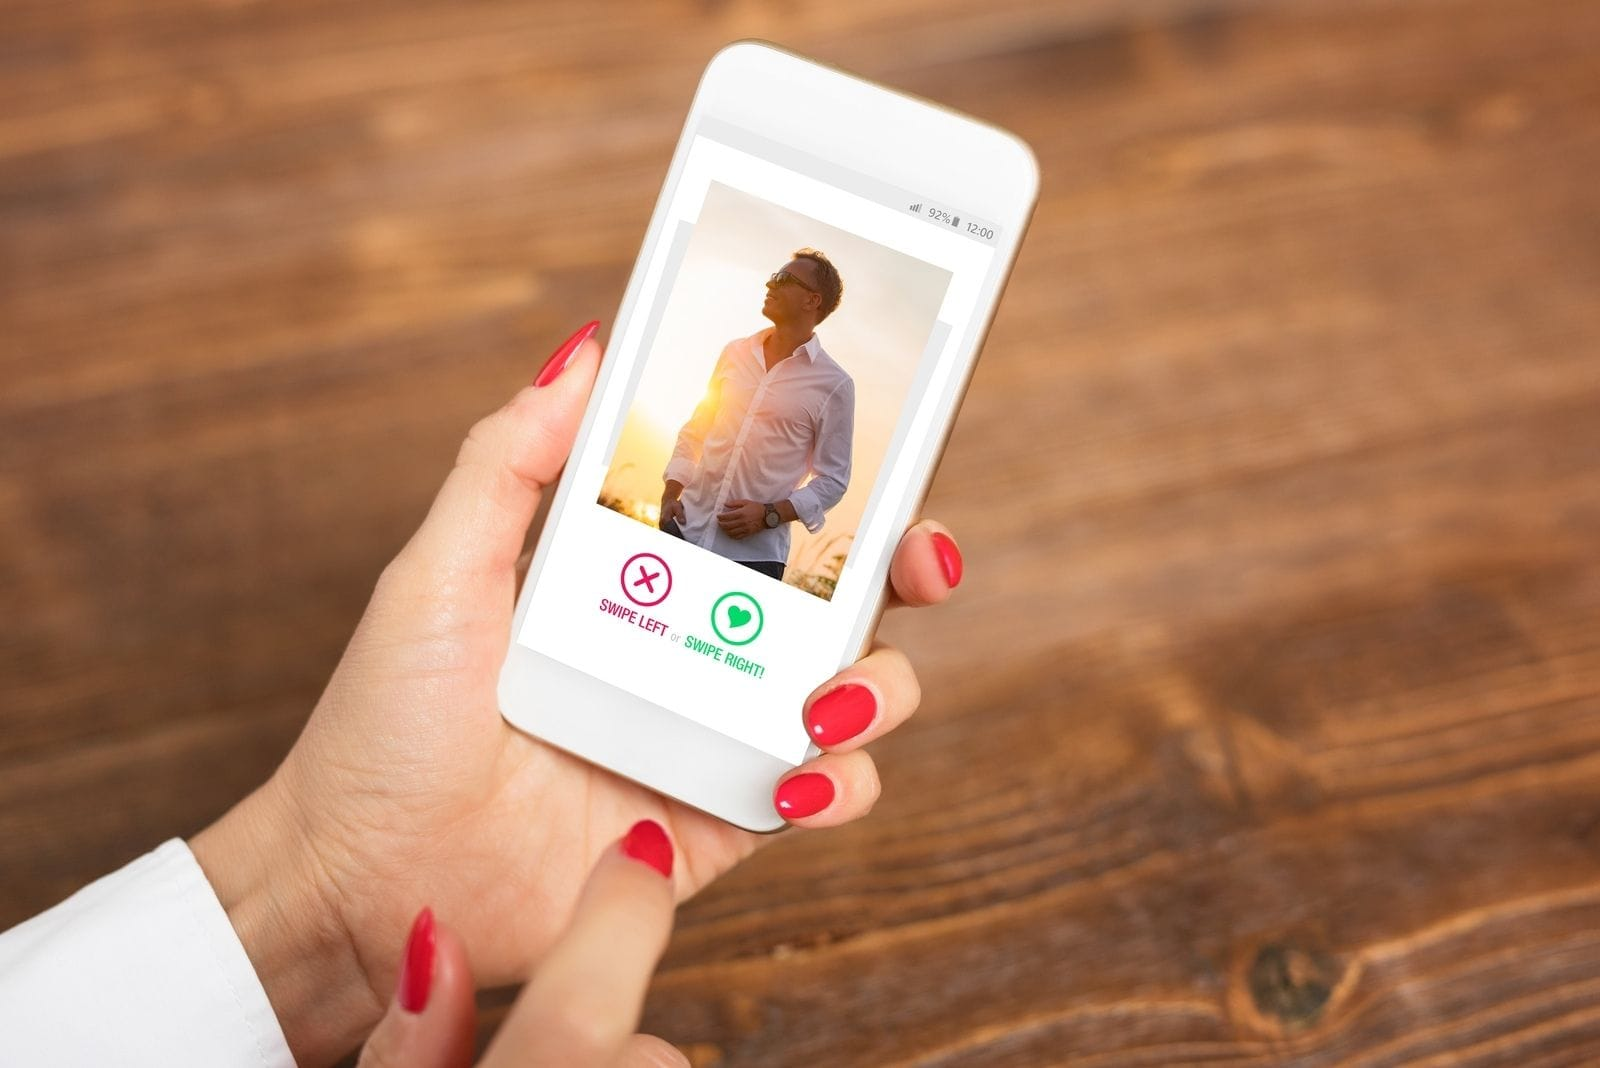 cropped hand of a woman holding a smartphone with a picture of a man in a dating app